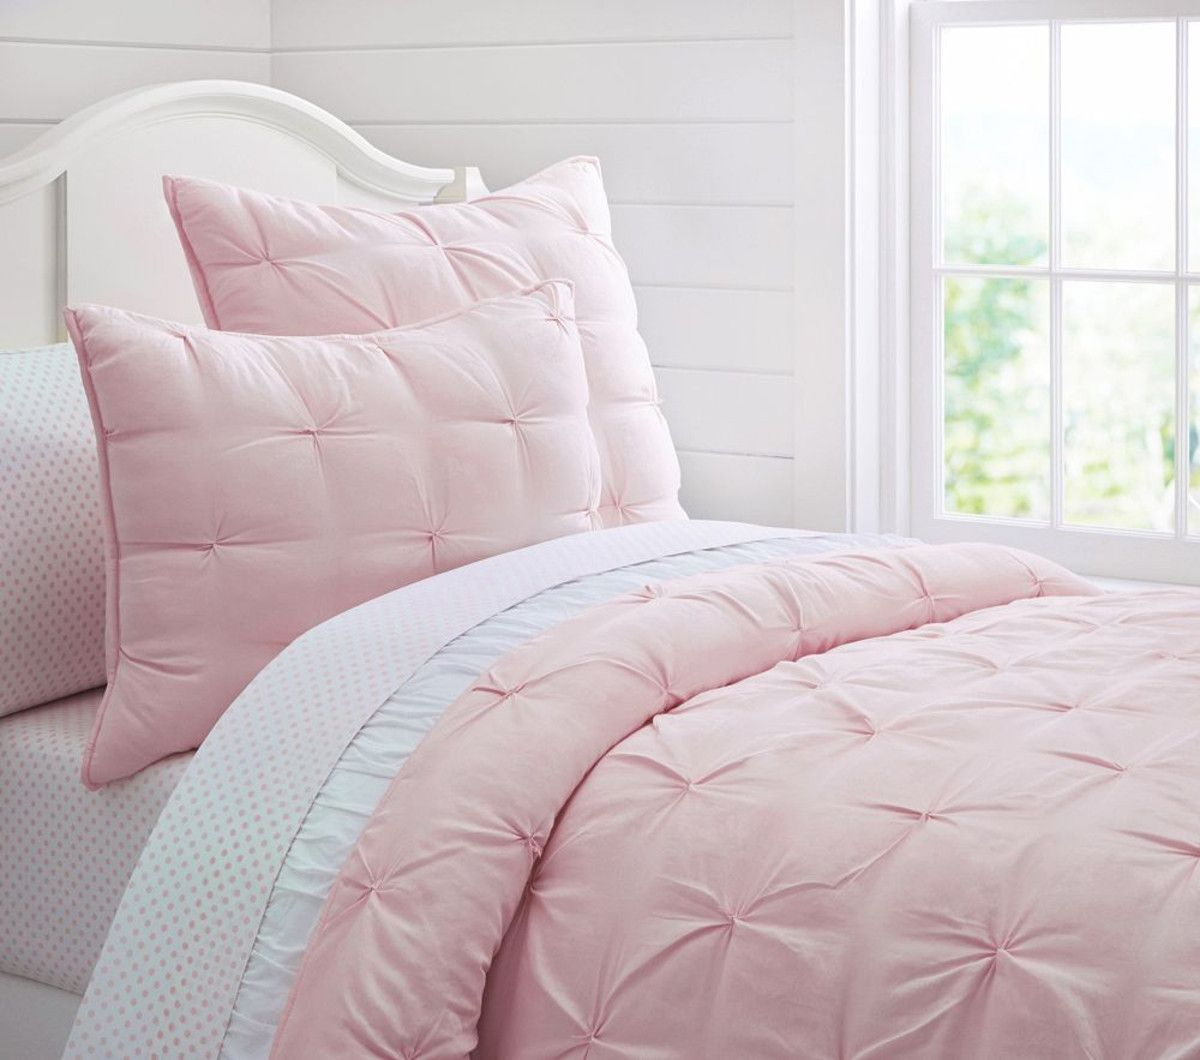 and quilt setsbedding linen woven gold comforter damask nz rose bedspread dusty setsluxury blush laurent pink garden set bedding sets covers mean pale top cover light hot duvet